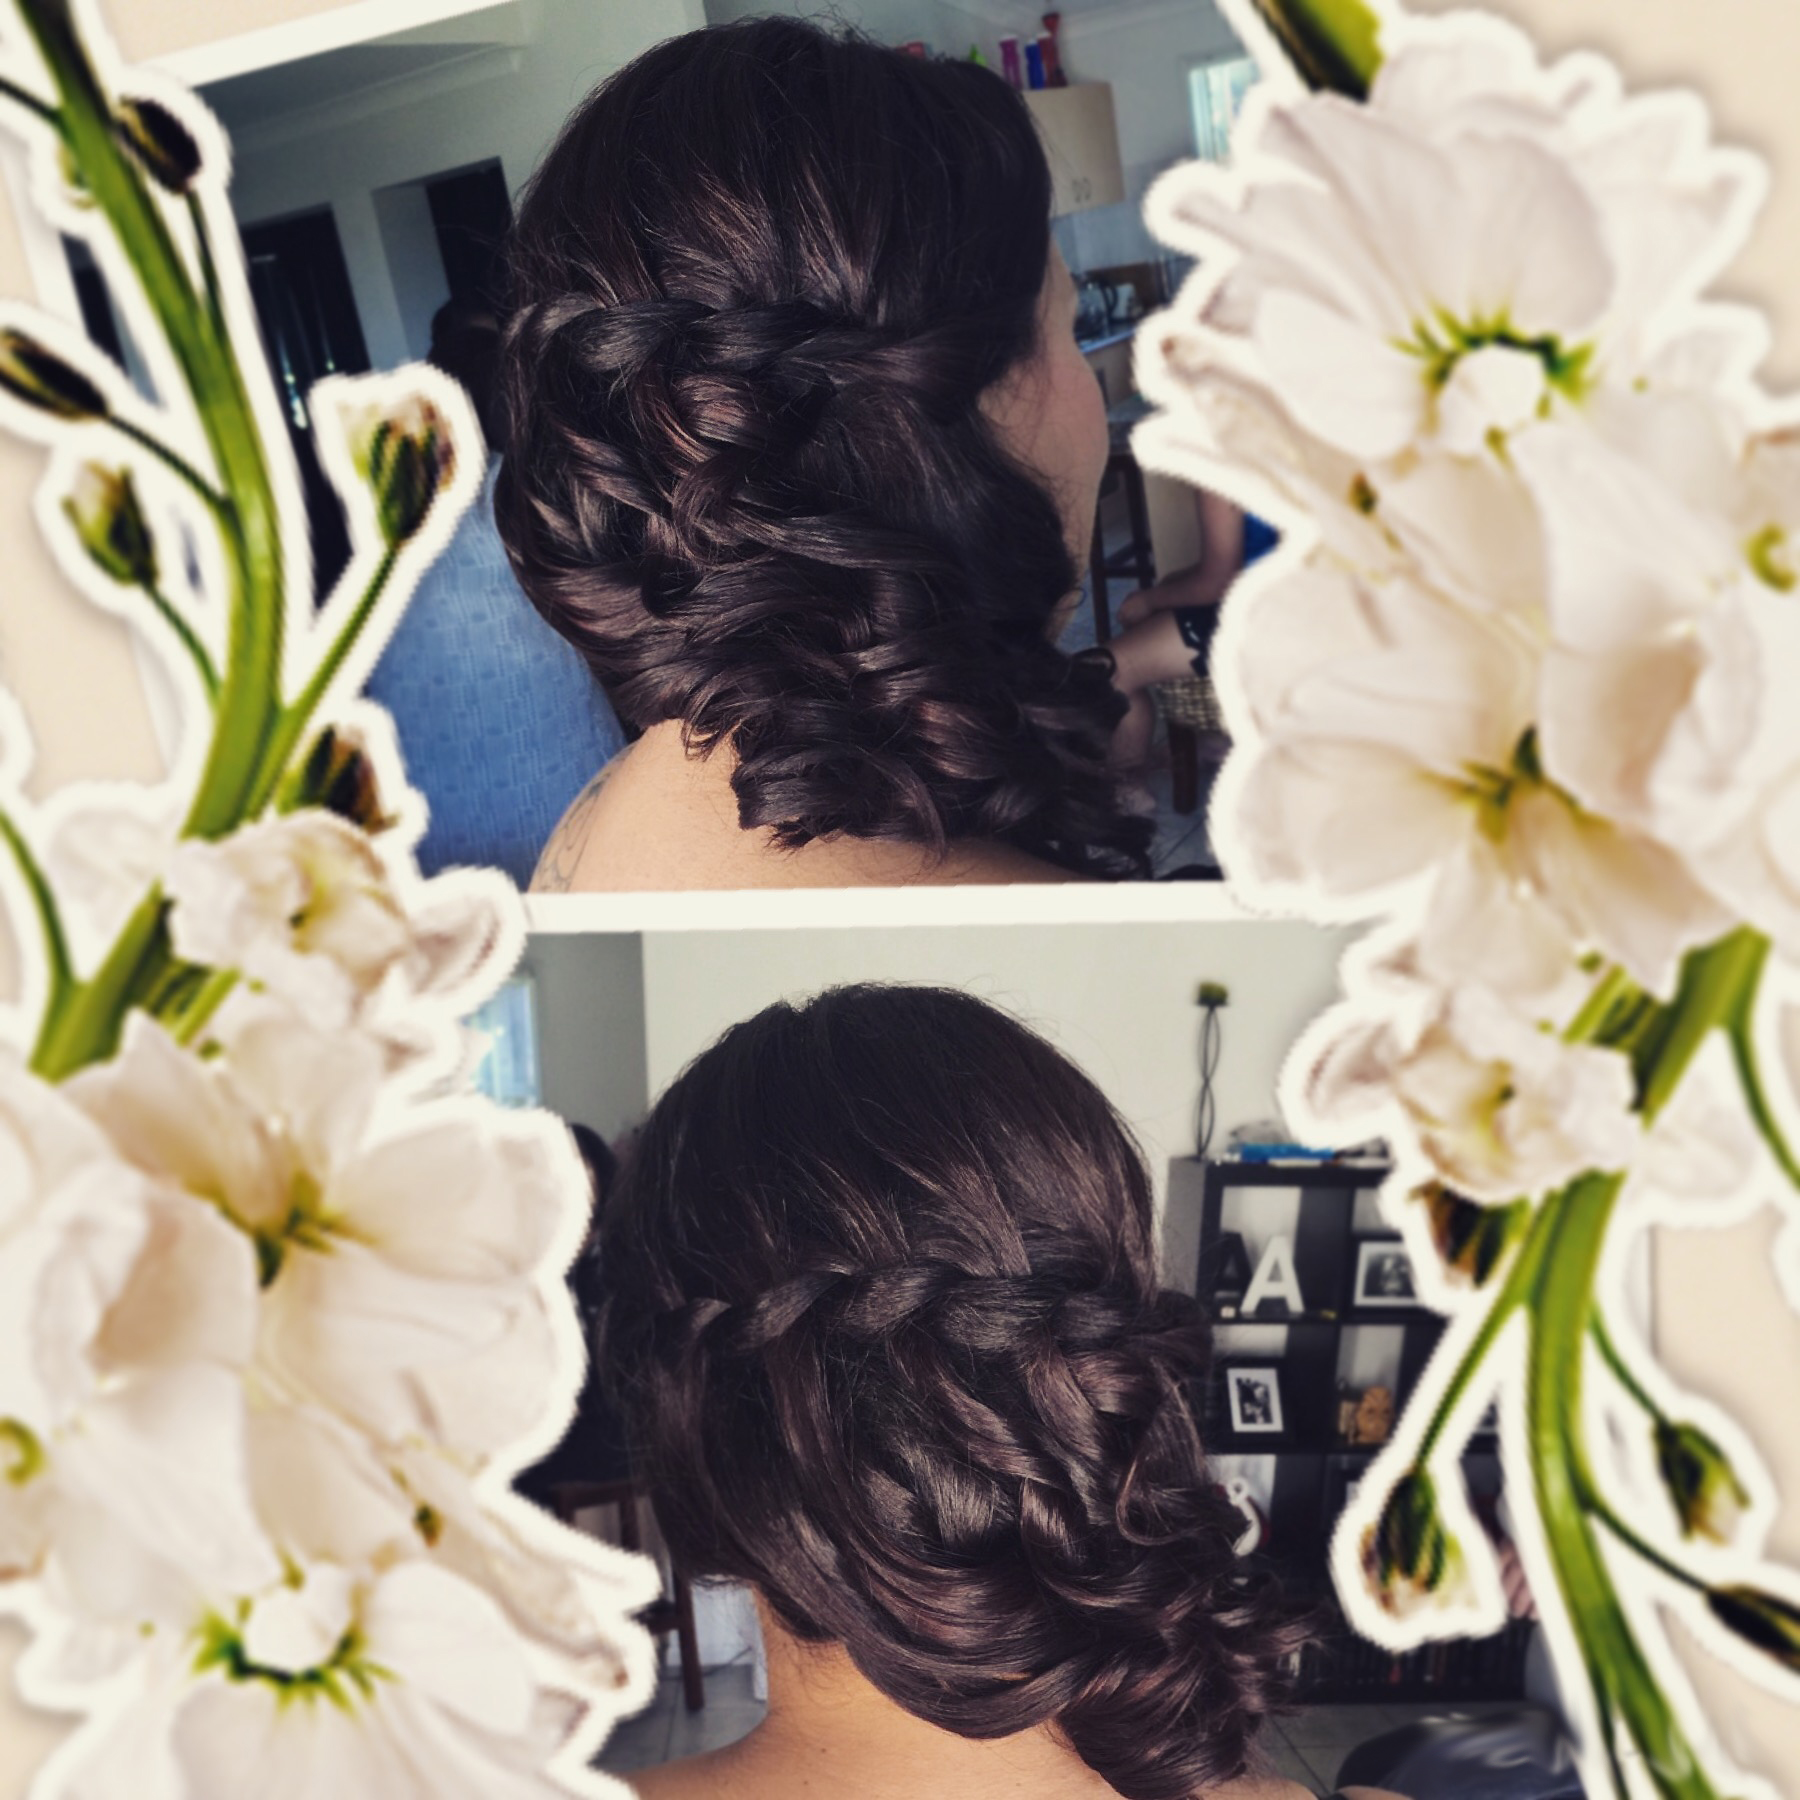 Beach garden wedding hairstylist